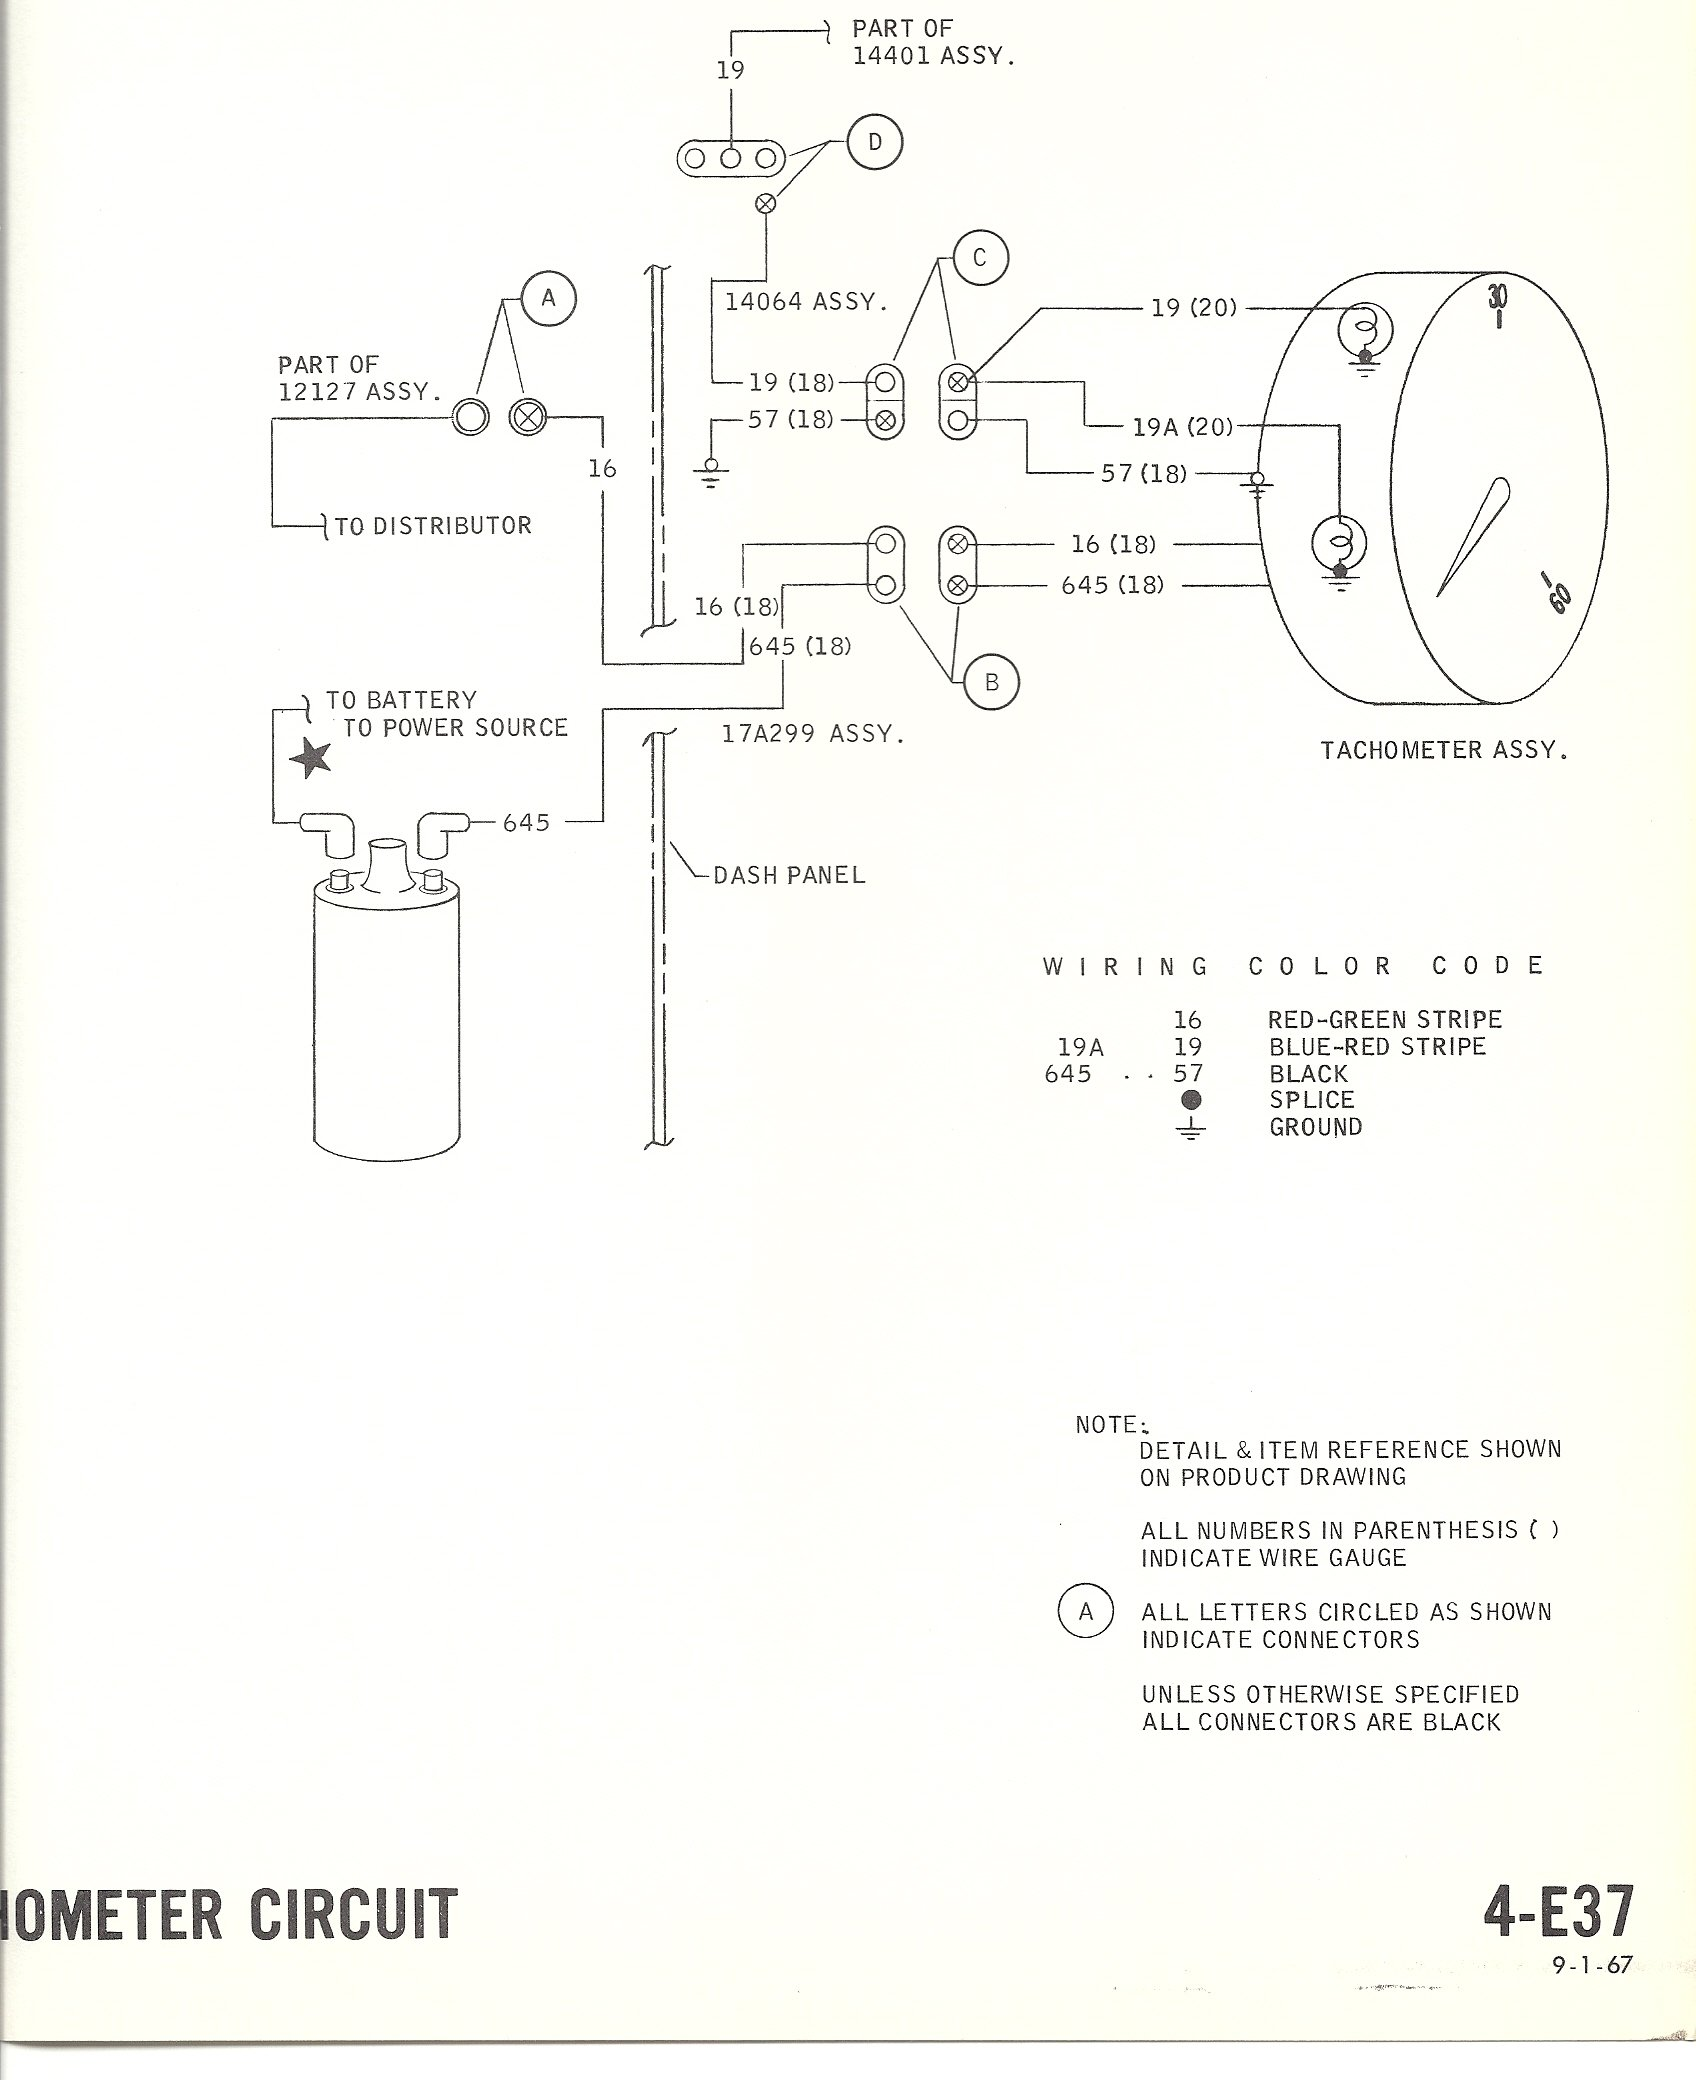 hight resolution of electric tachometer wiring wiring diagram sheetwrg 2228 electric tachometer wiring diagram 1968 mustang wiring diagrams